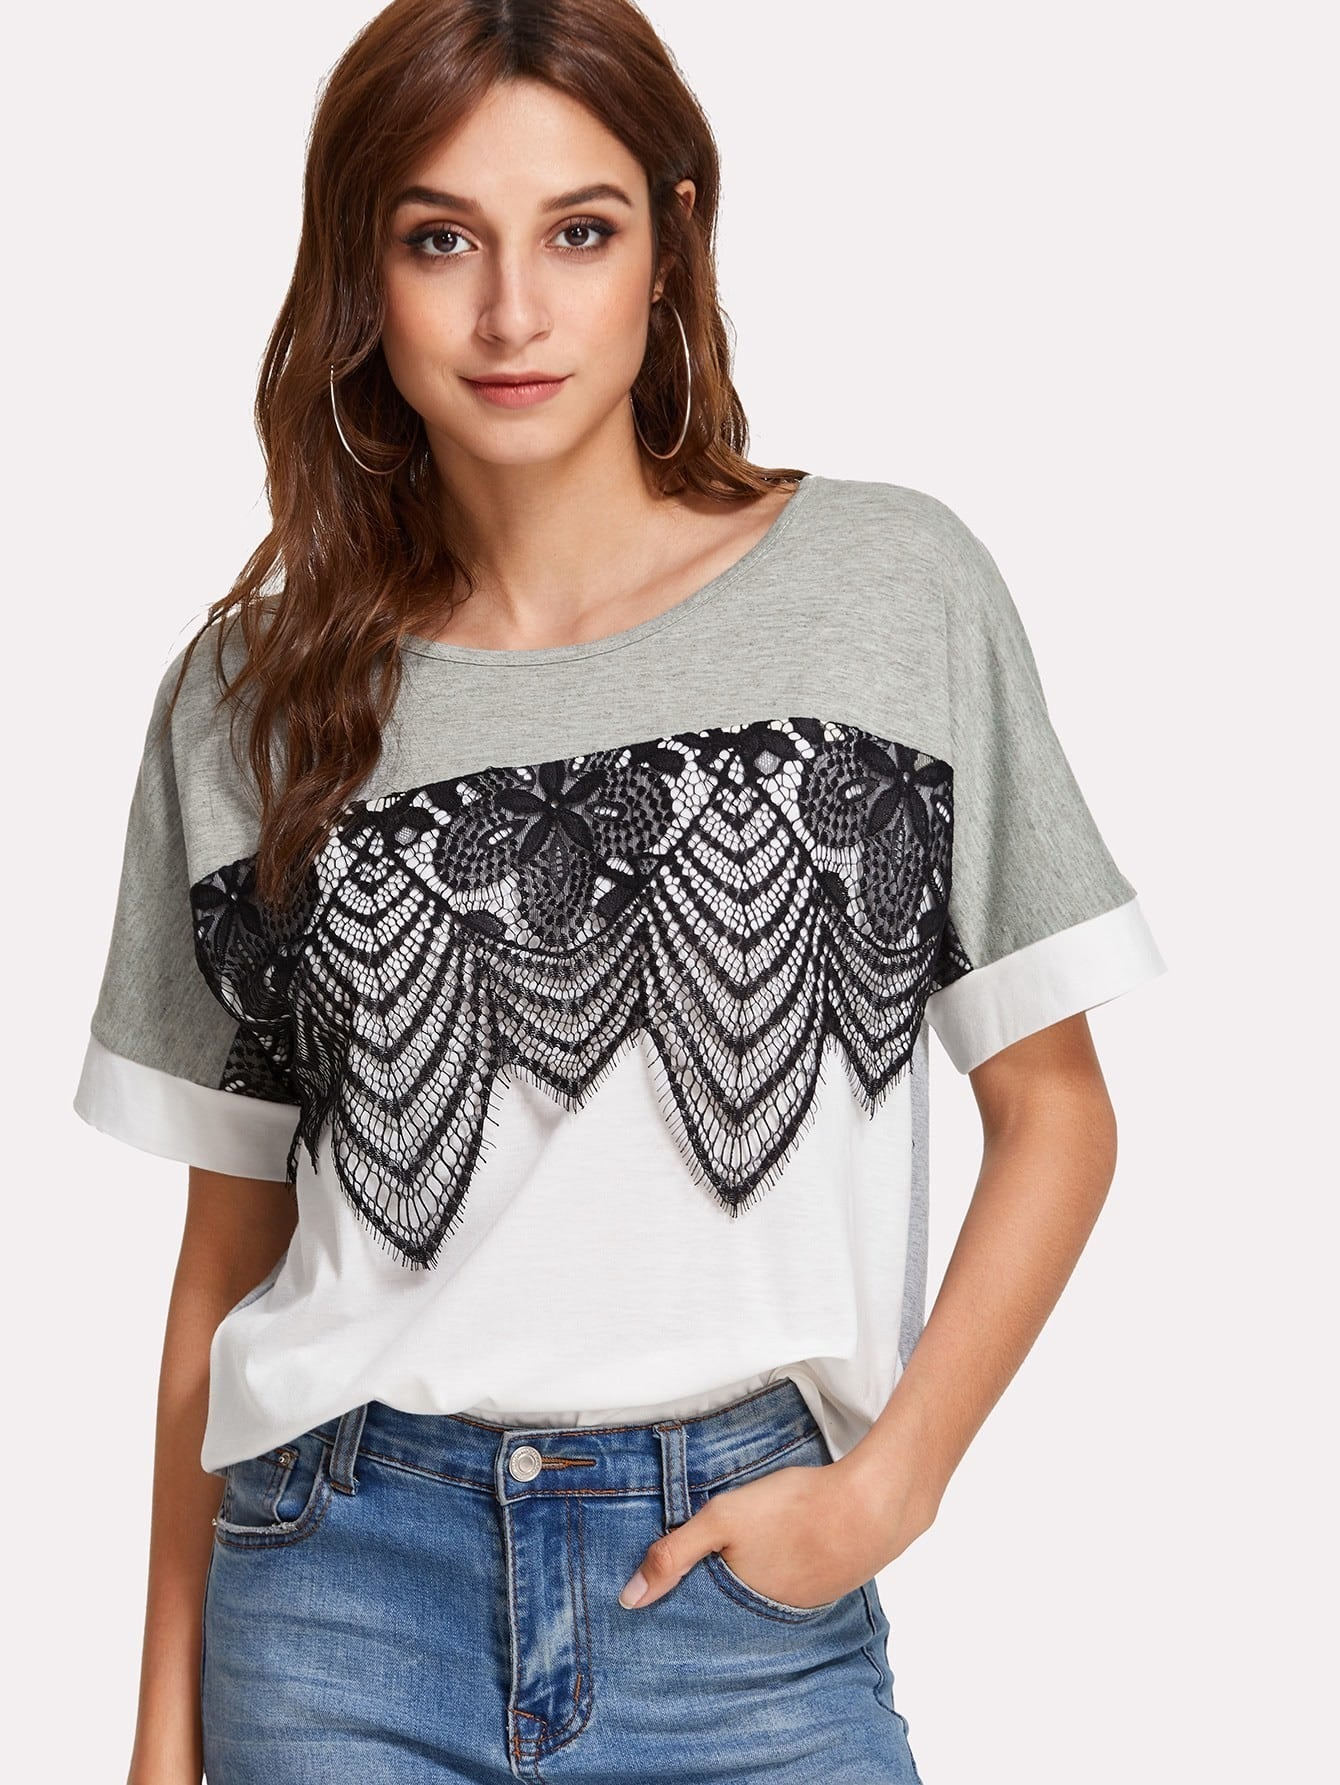 Lace Applique Two Tone T-shirt lace applique two tone t shirt